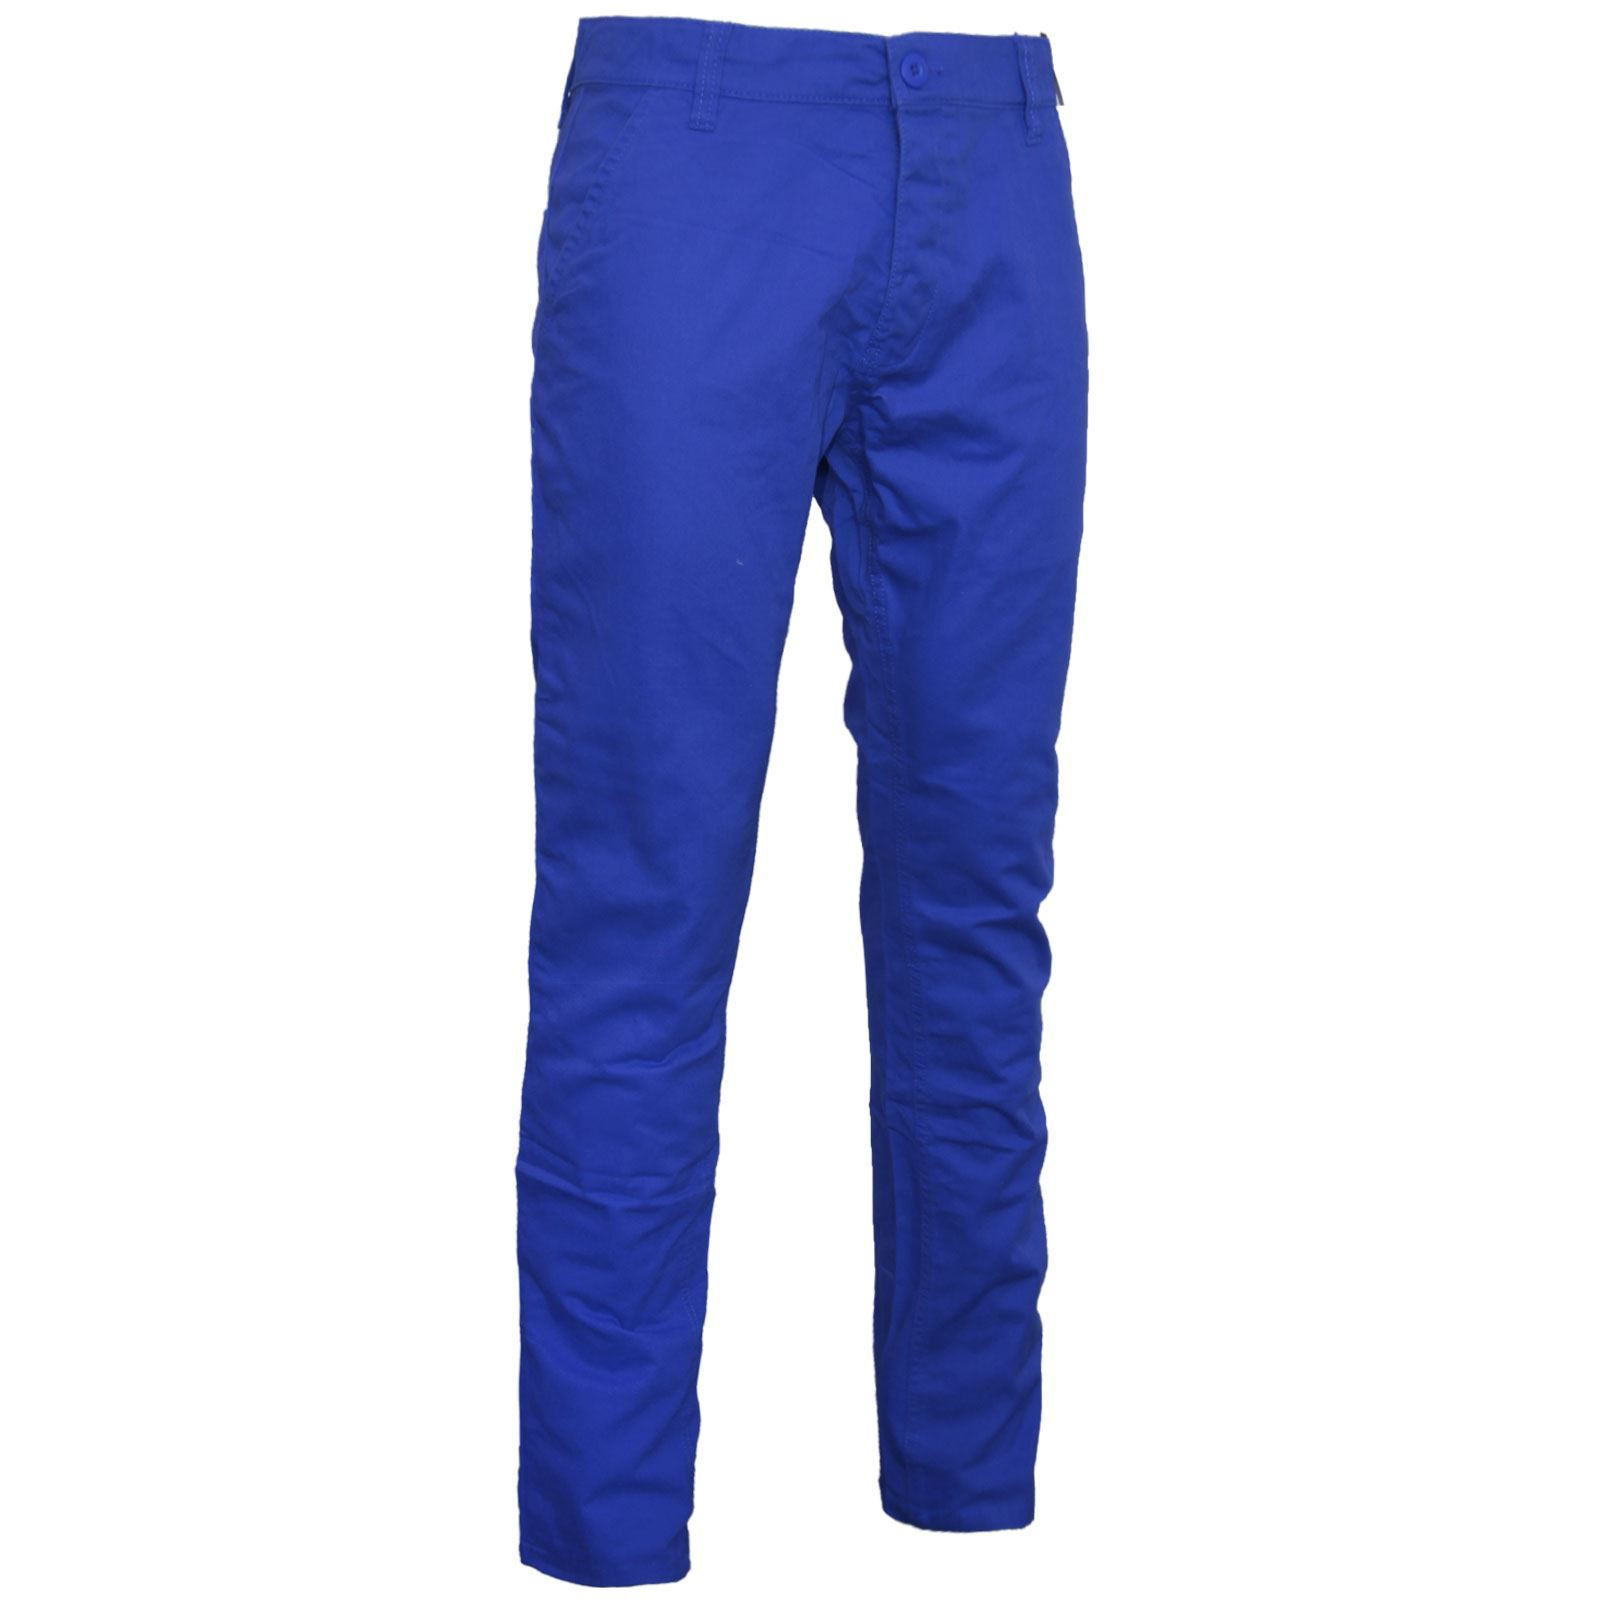 MENS CHINO JEANS SLIM REGULAR FIT PANTS TROUSERS STRAIGHT LEG ...